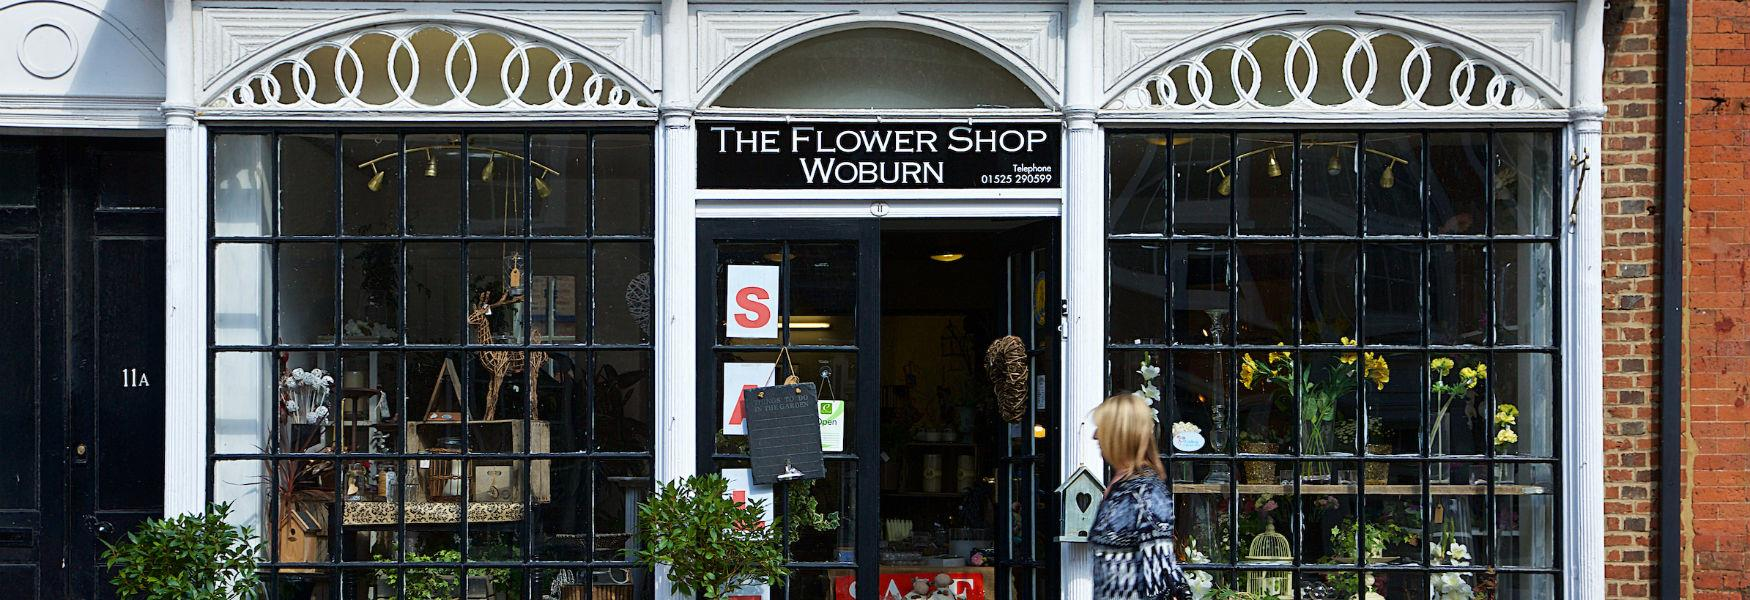 Woburn Flower Shop